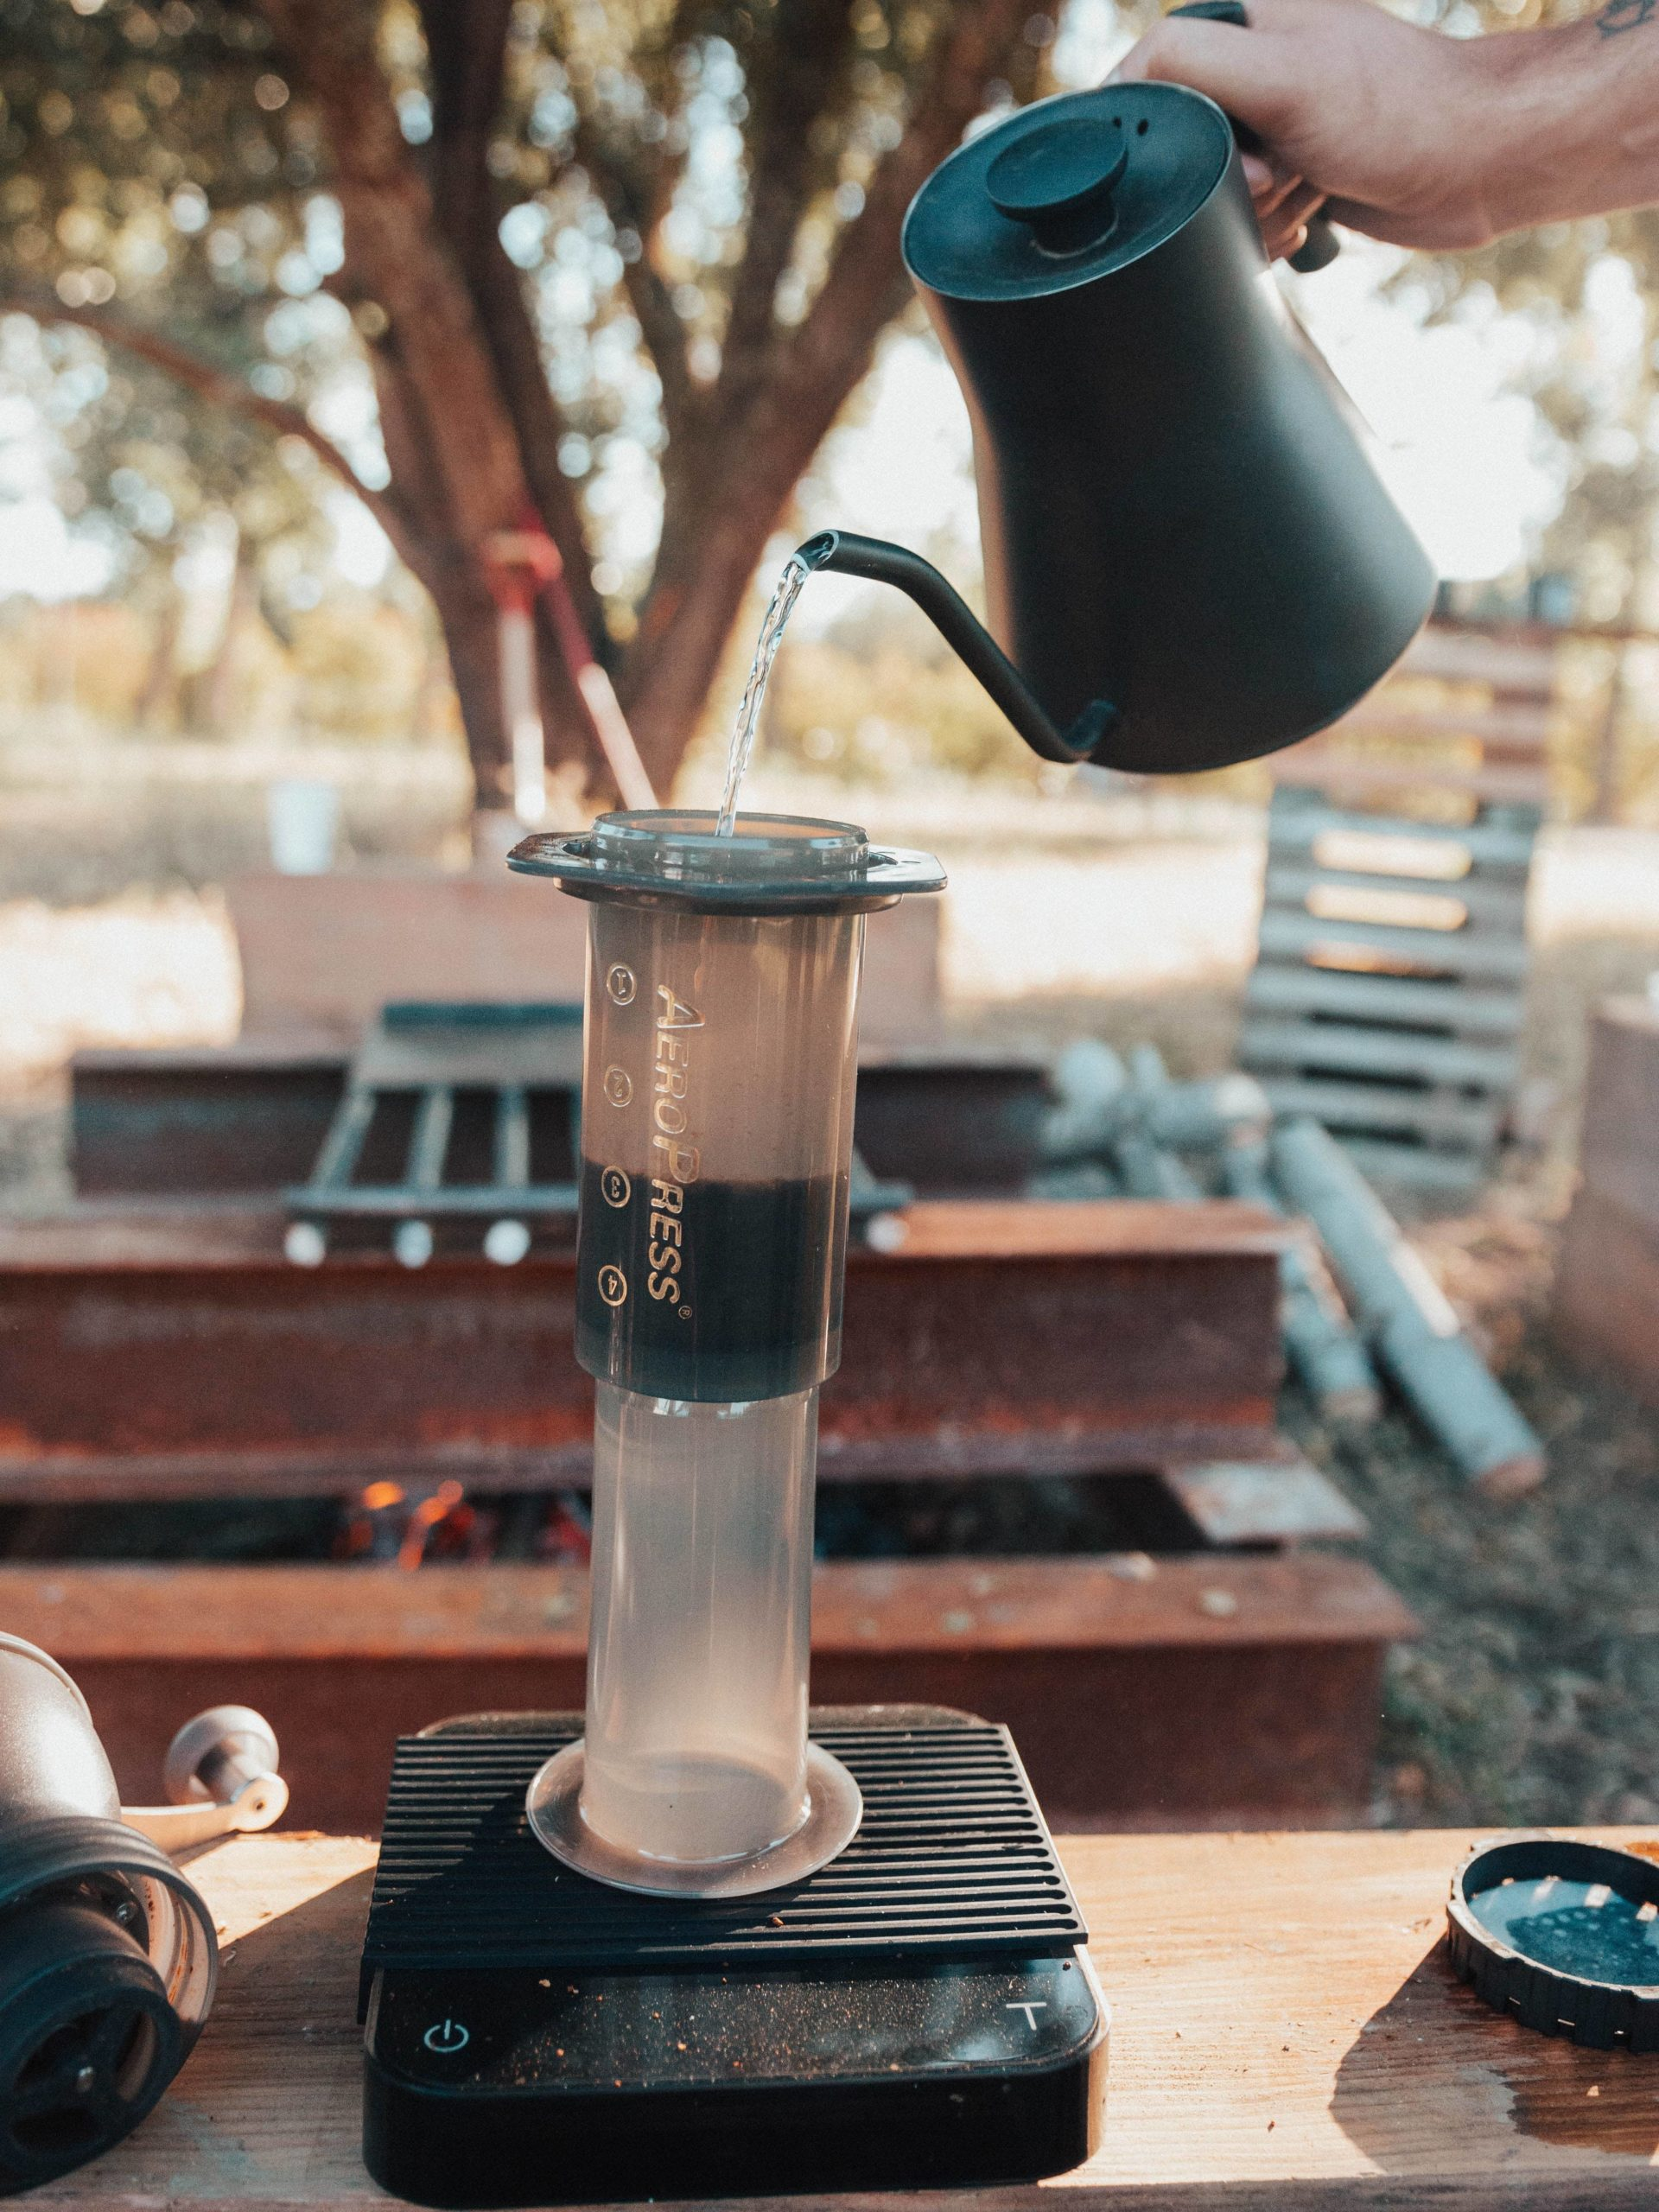 Pouring water from a kettle into an Aeropress